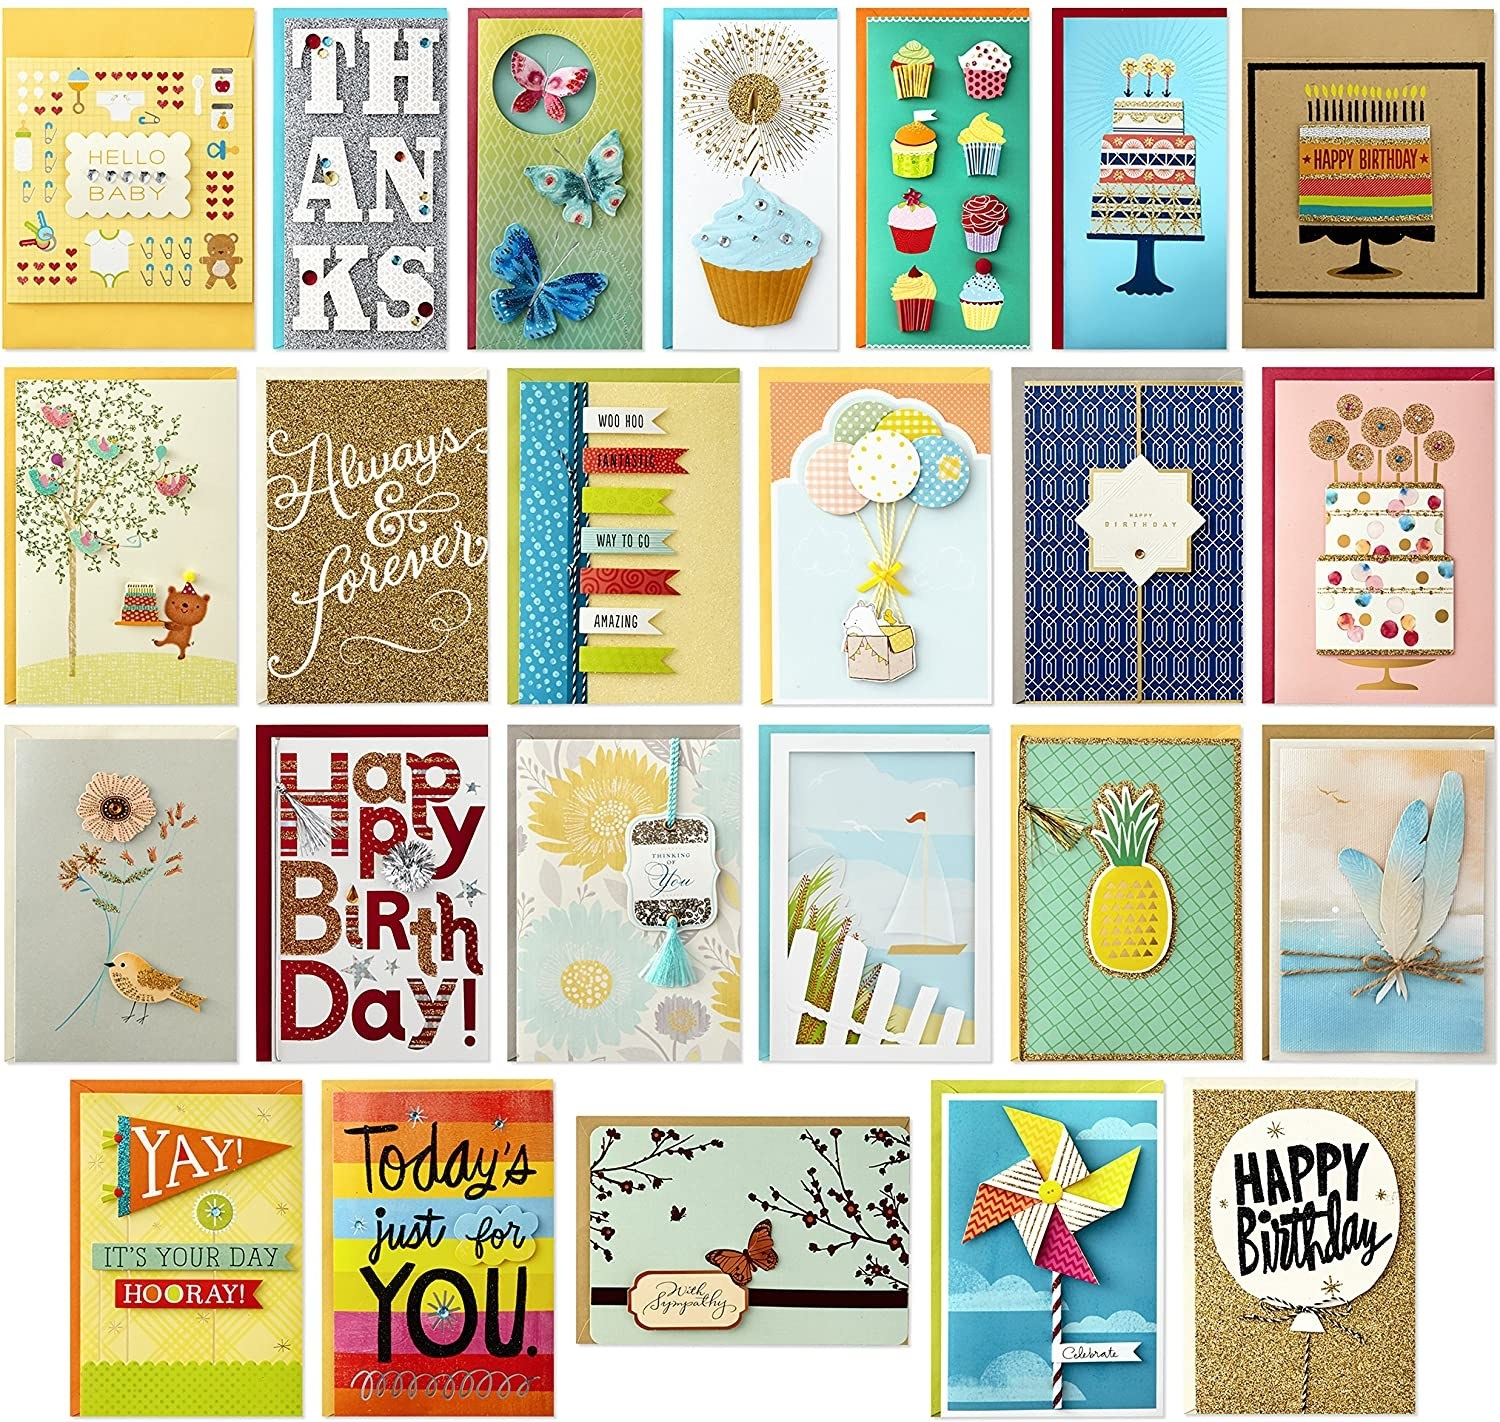 A medley of greeting cards with various colours, textures, and messages on their fronts